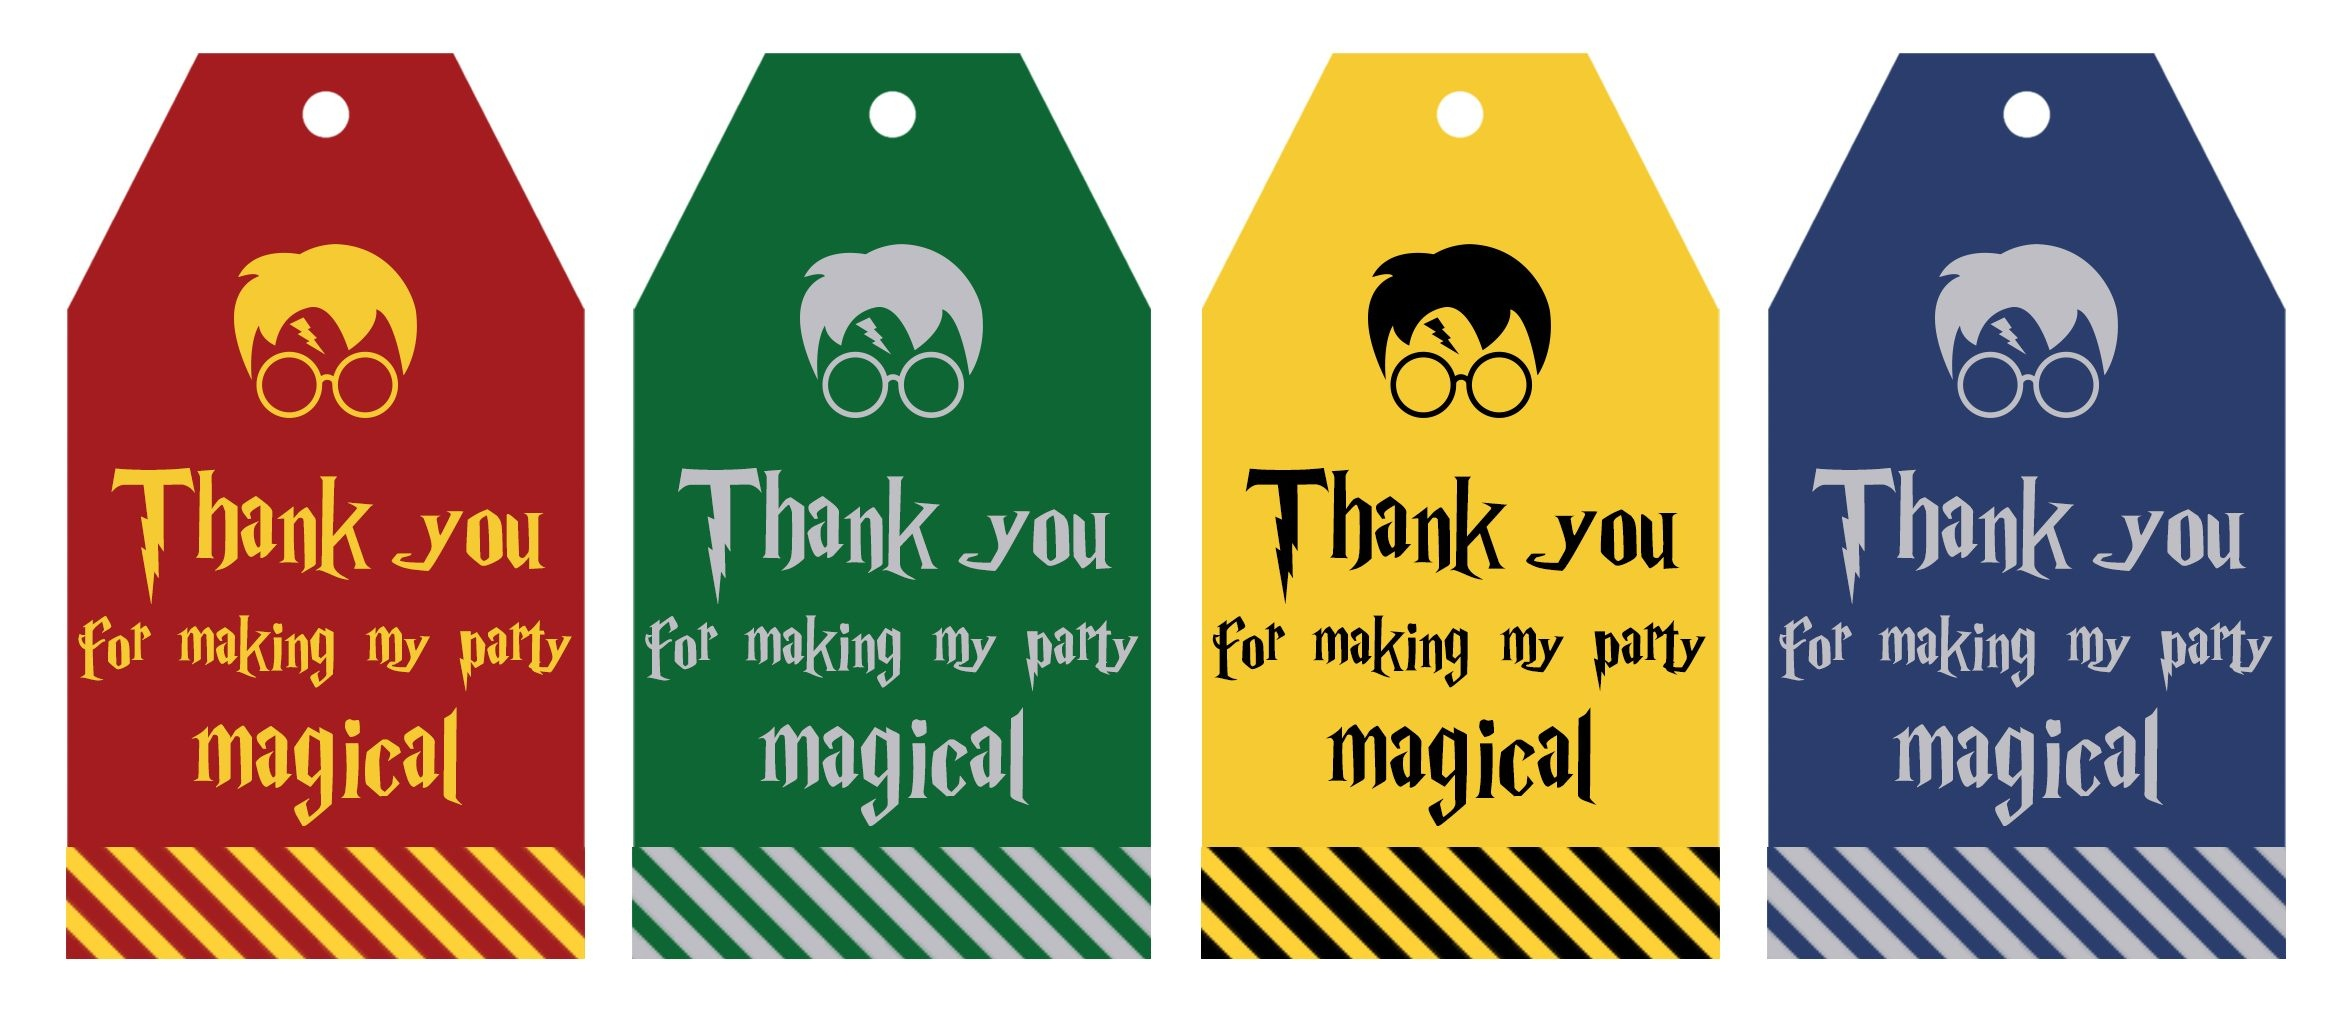 Free Printable Harry Potter Party Favor Gift Tags - Lovely Planner - Party Favor Tags Free Printable